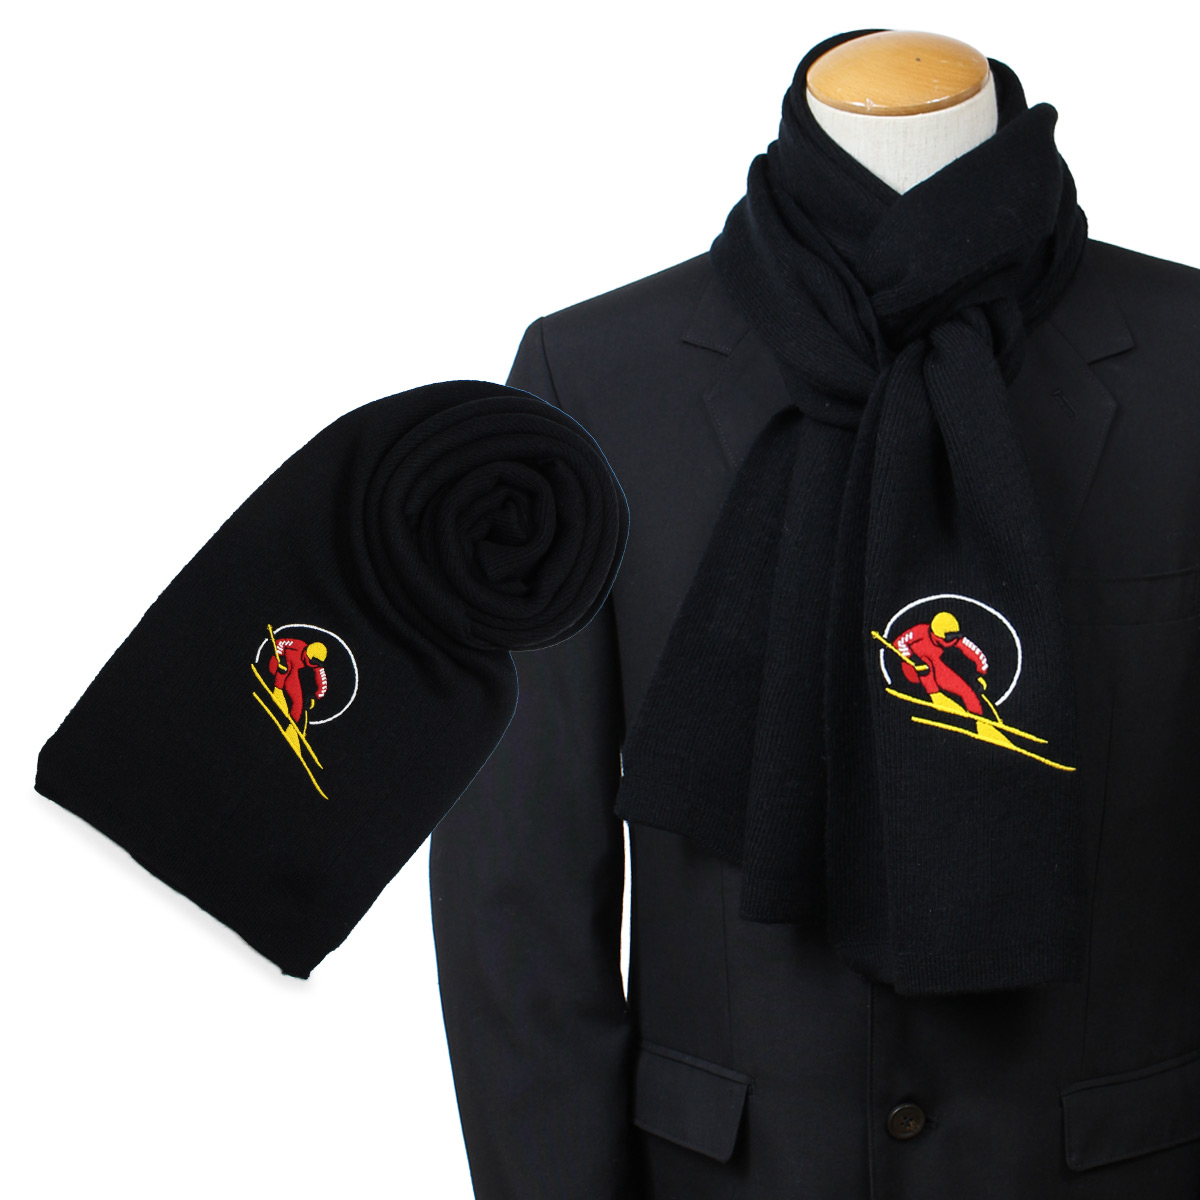 Ralph Pc0278110 Shinnyu Load191 Skier Lauren Men Polo Retro Black Wool Scarf Red DHIWE92Y